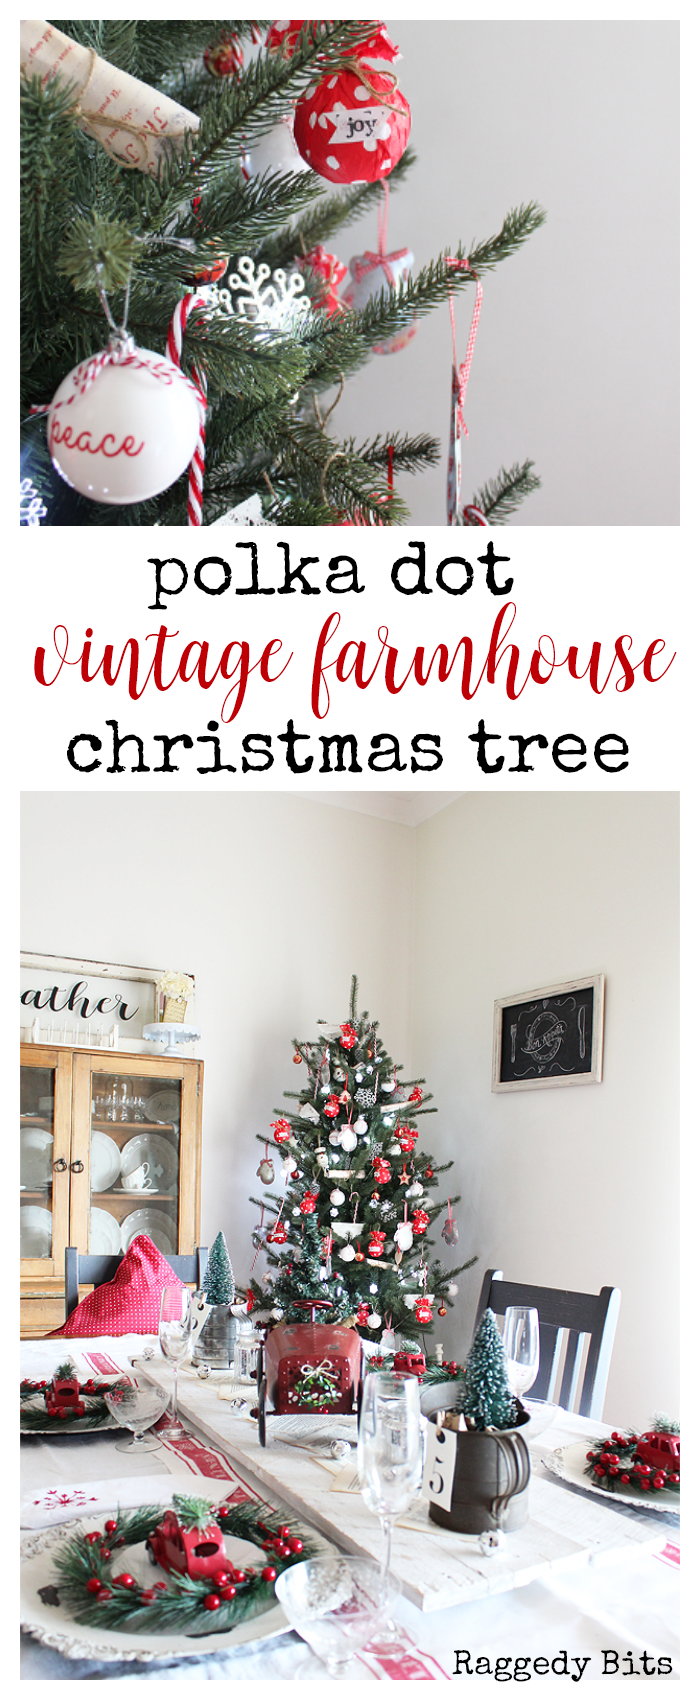 Day 12 of our 12 Days of Christmas Blog Hop is all about Christmas Trees. Sharing our Polka Dot Vintage Farmhouse Christmas Tree | www.raggedy-bits.com #raggedybits #farmhouse #vintage #christmas #12DaysOfChristmasBlogHop #ChristmasTree